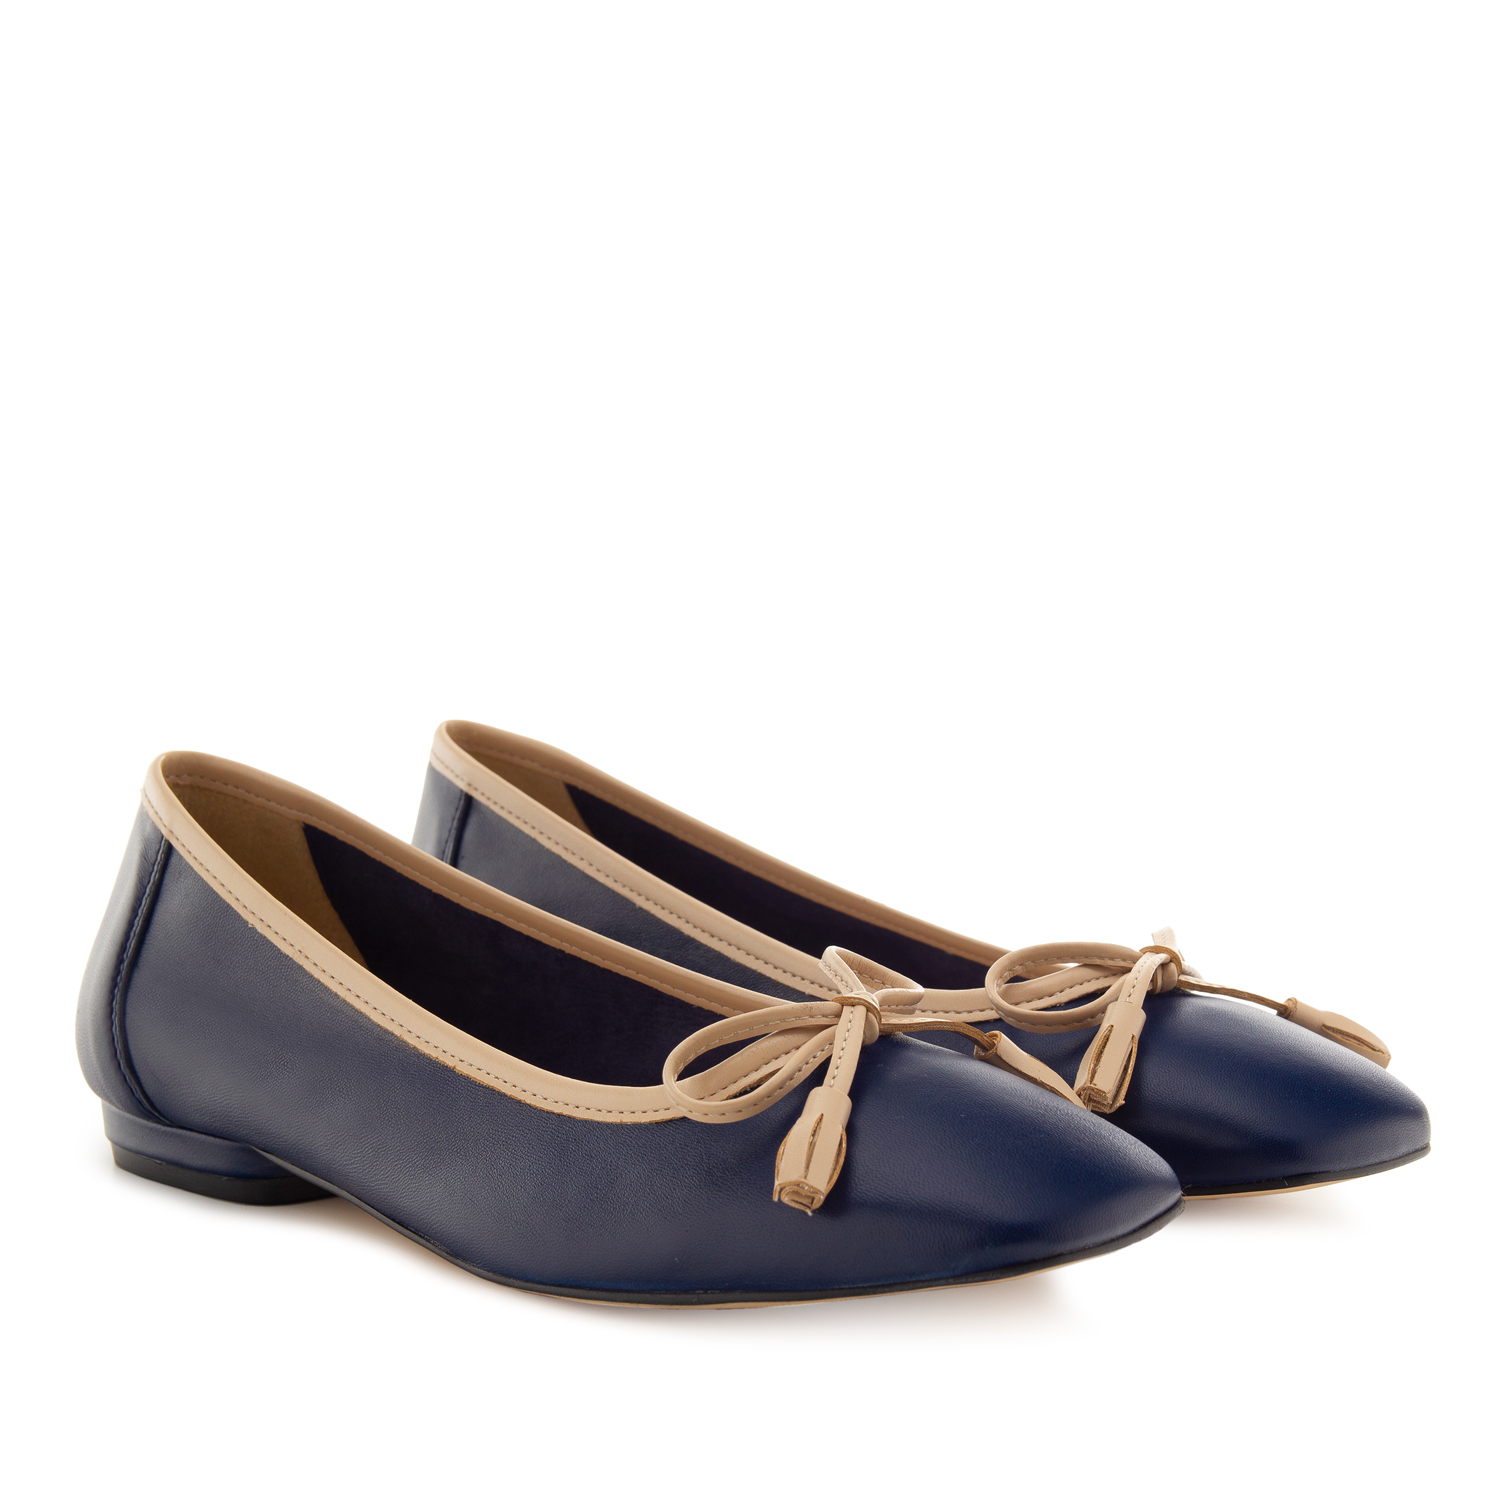 Bow Ballet Flats in Navy Leather